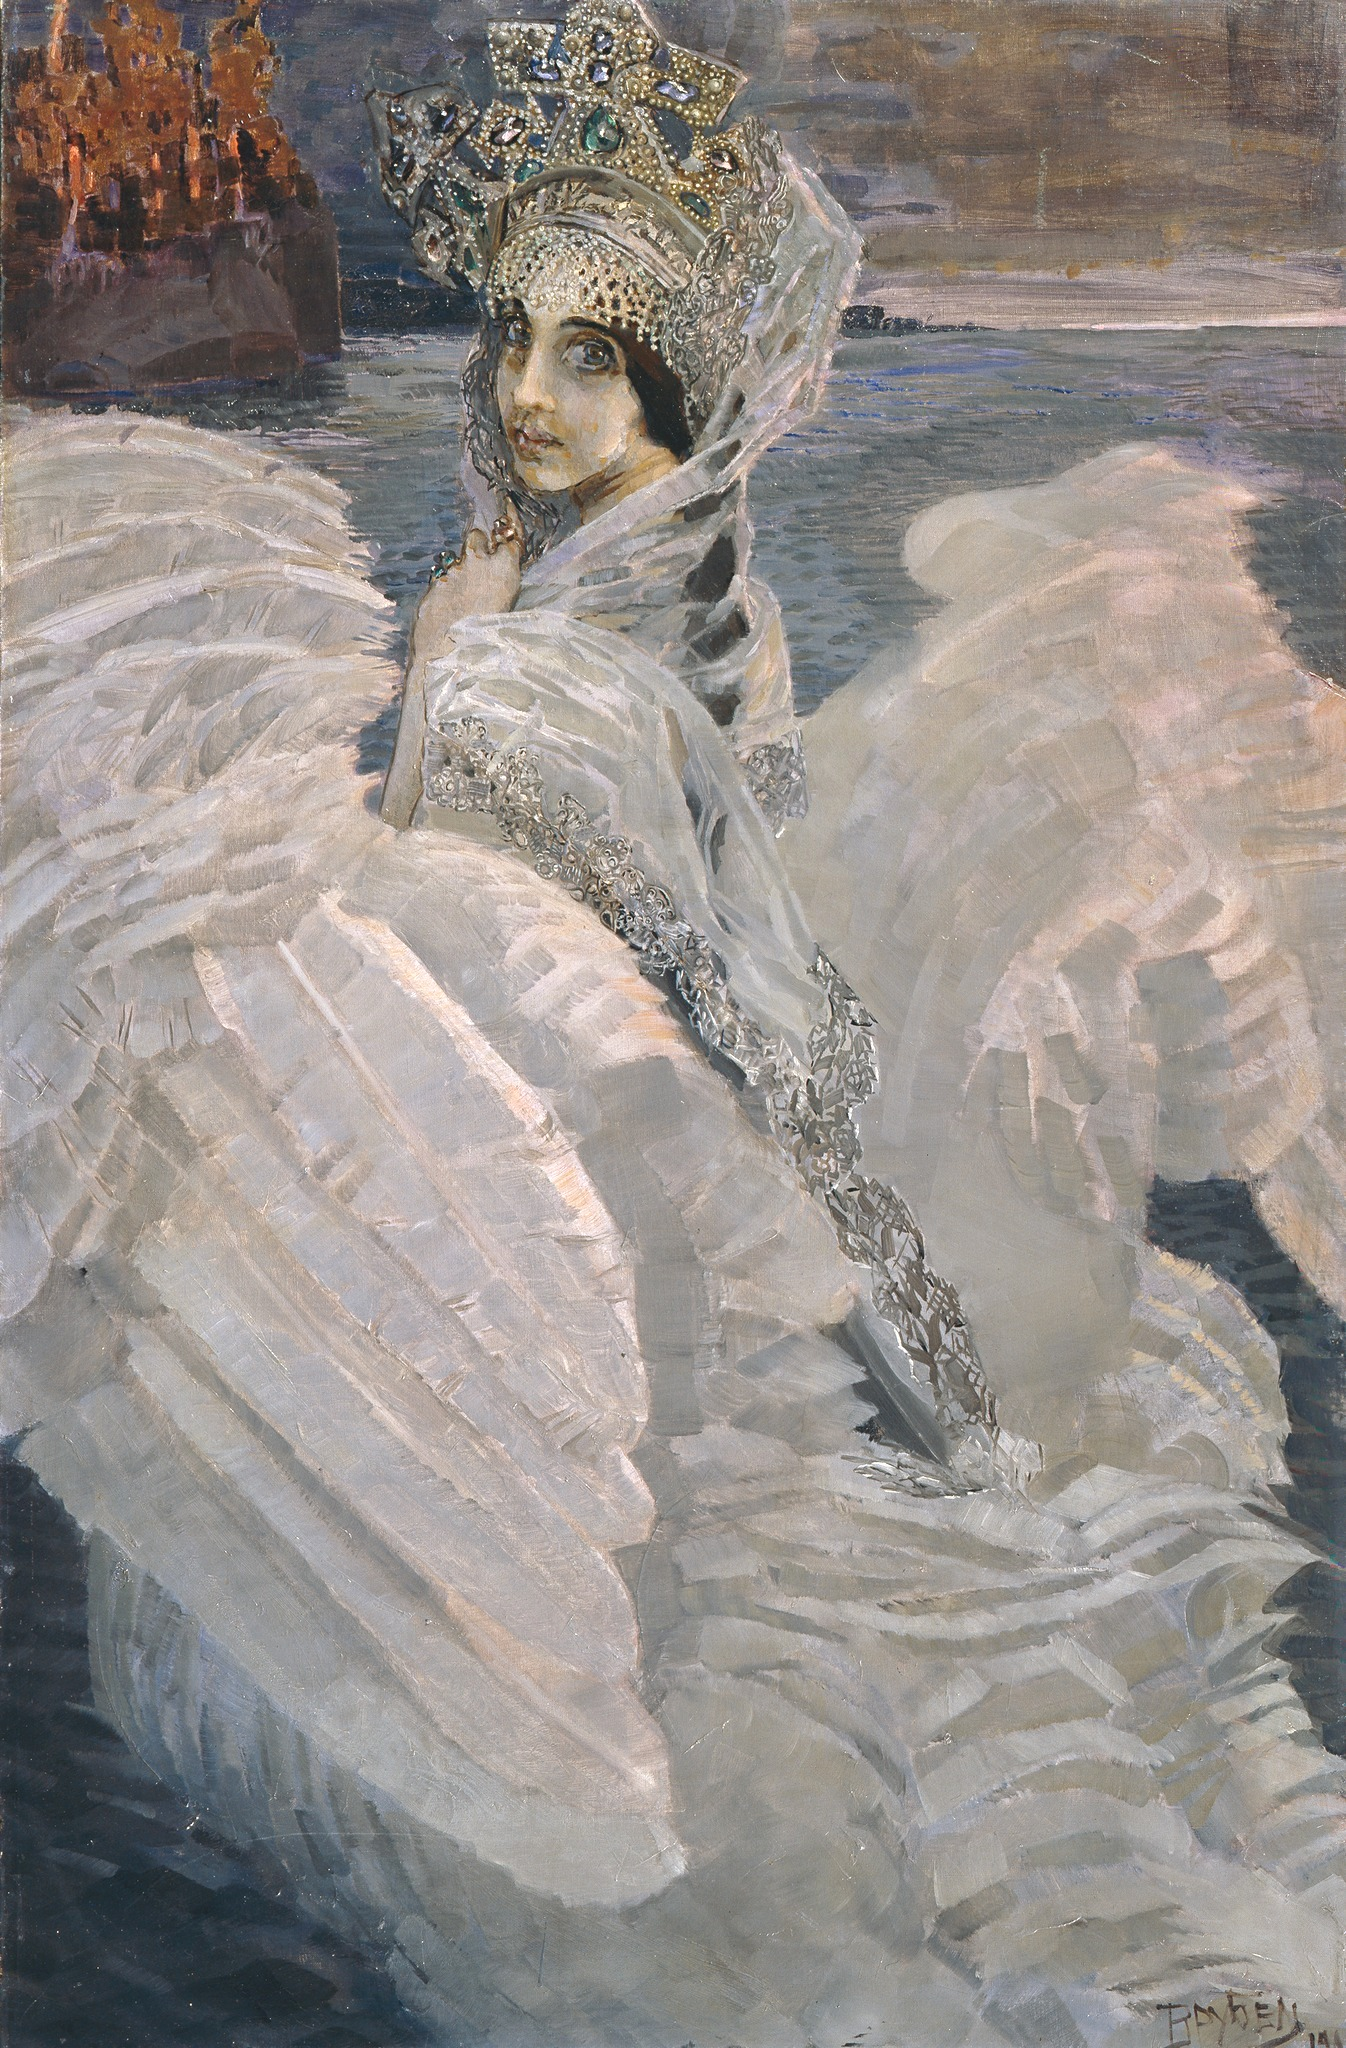 Mikhail Vrubel, The Swan Princess, 1900, Tretyakov Galley, Moscow, Russia.